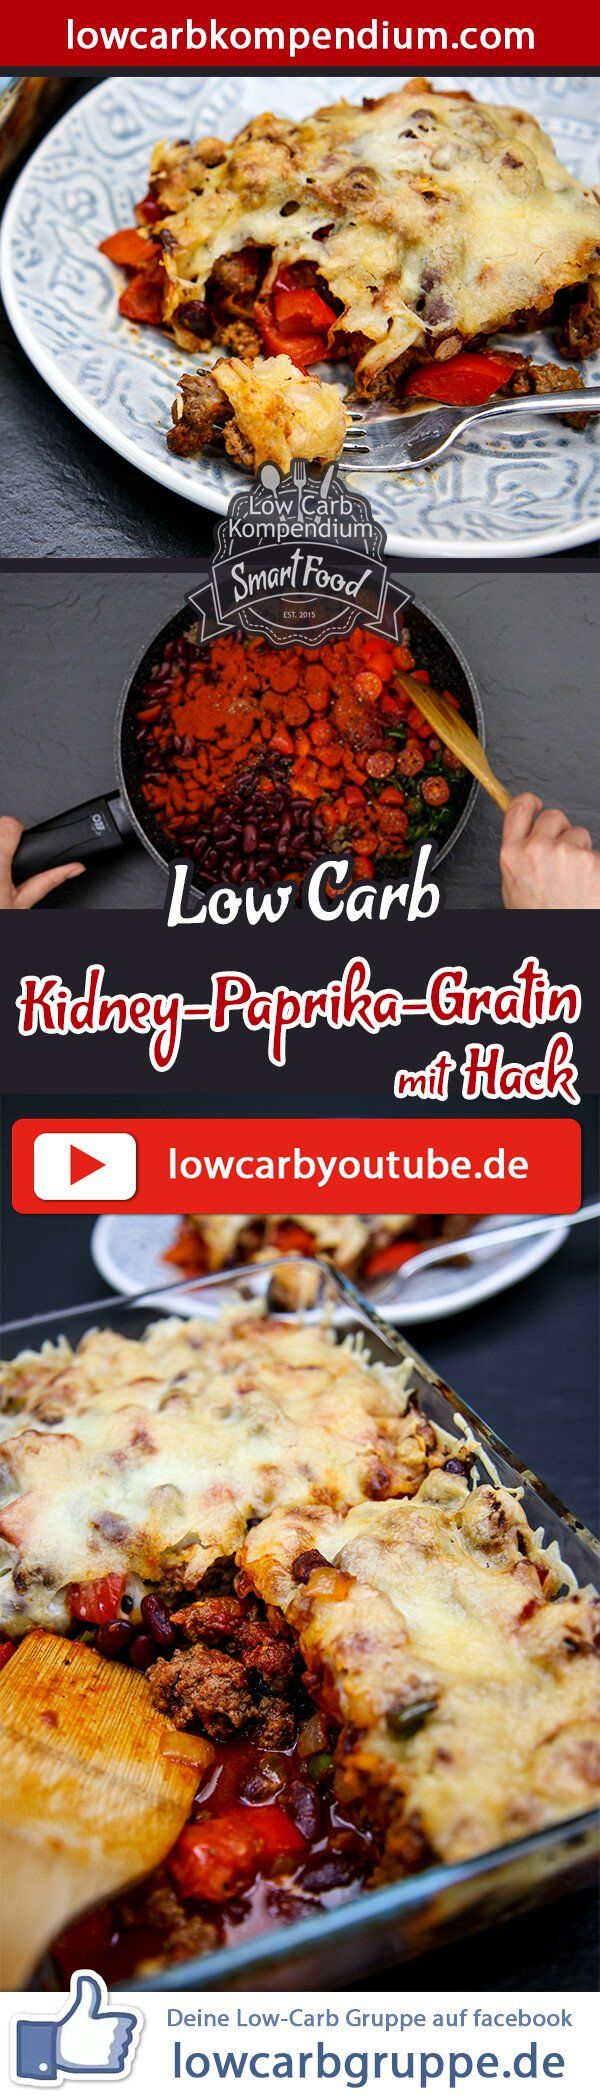 Photo of Kidney and paprika gratin with a hack 😍 Low-carb casserole simple and tasty